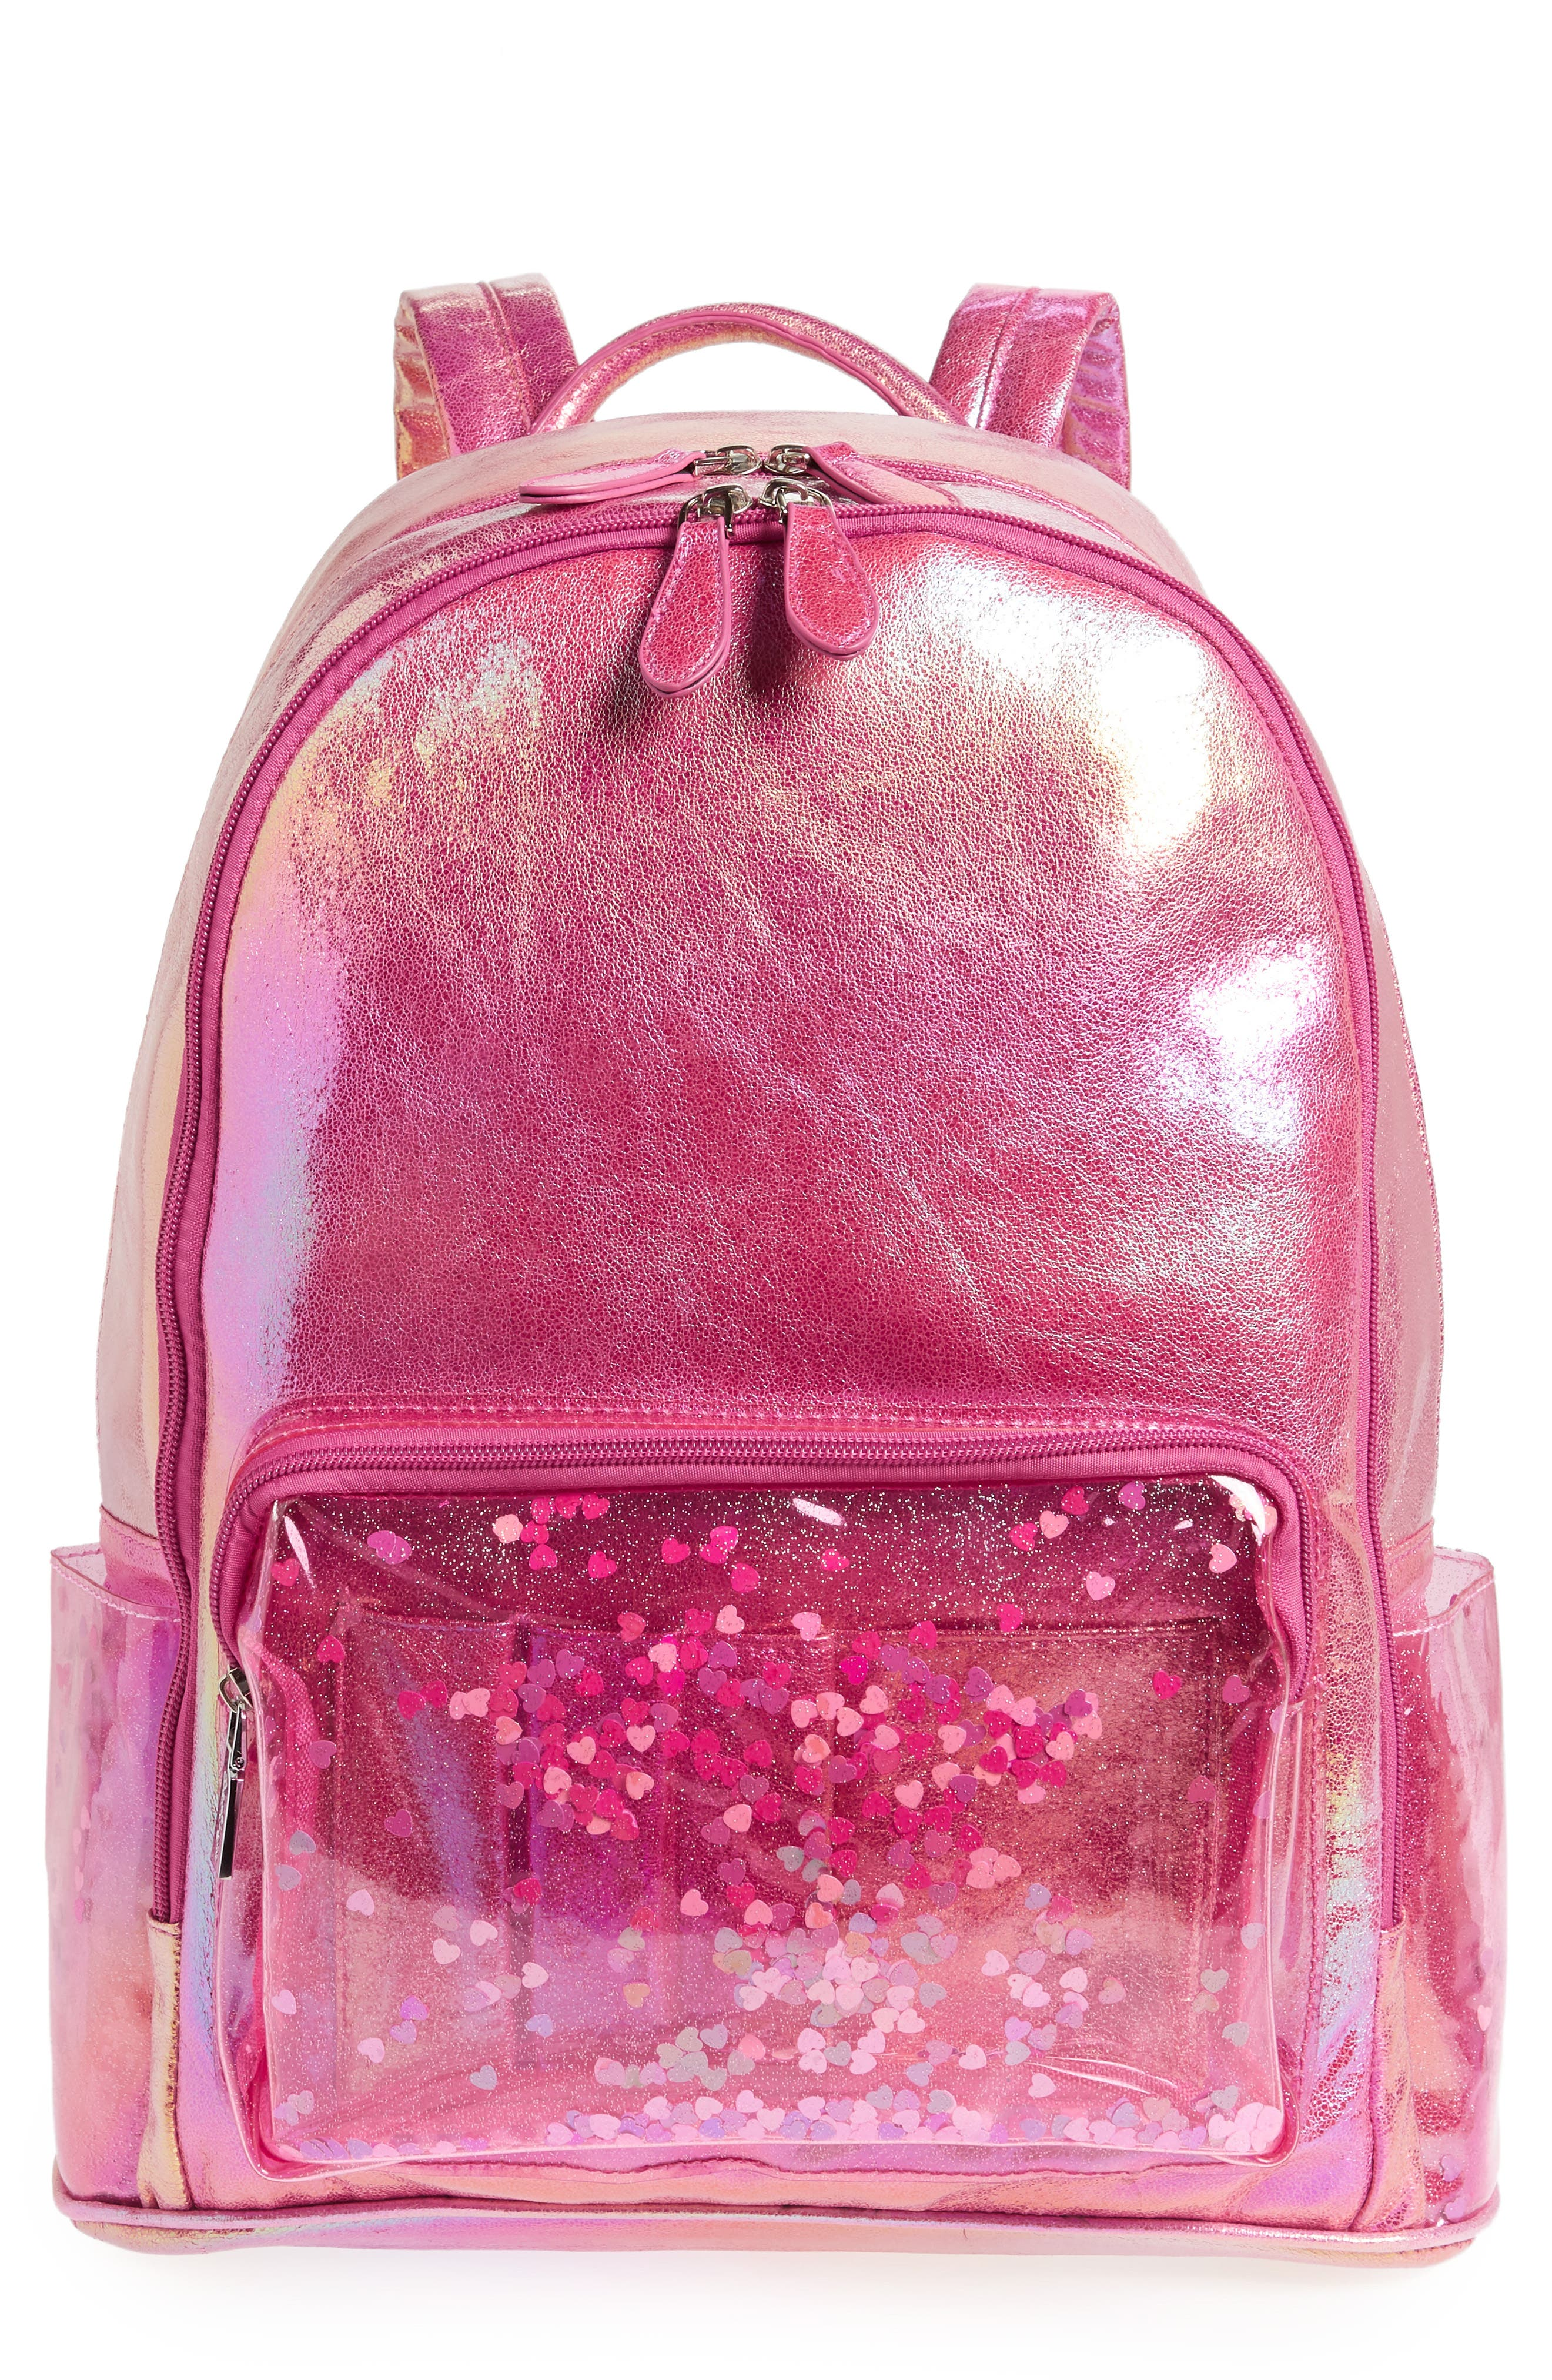 Heart Confetti Holographic Backpack,                         Main,                         color, 650